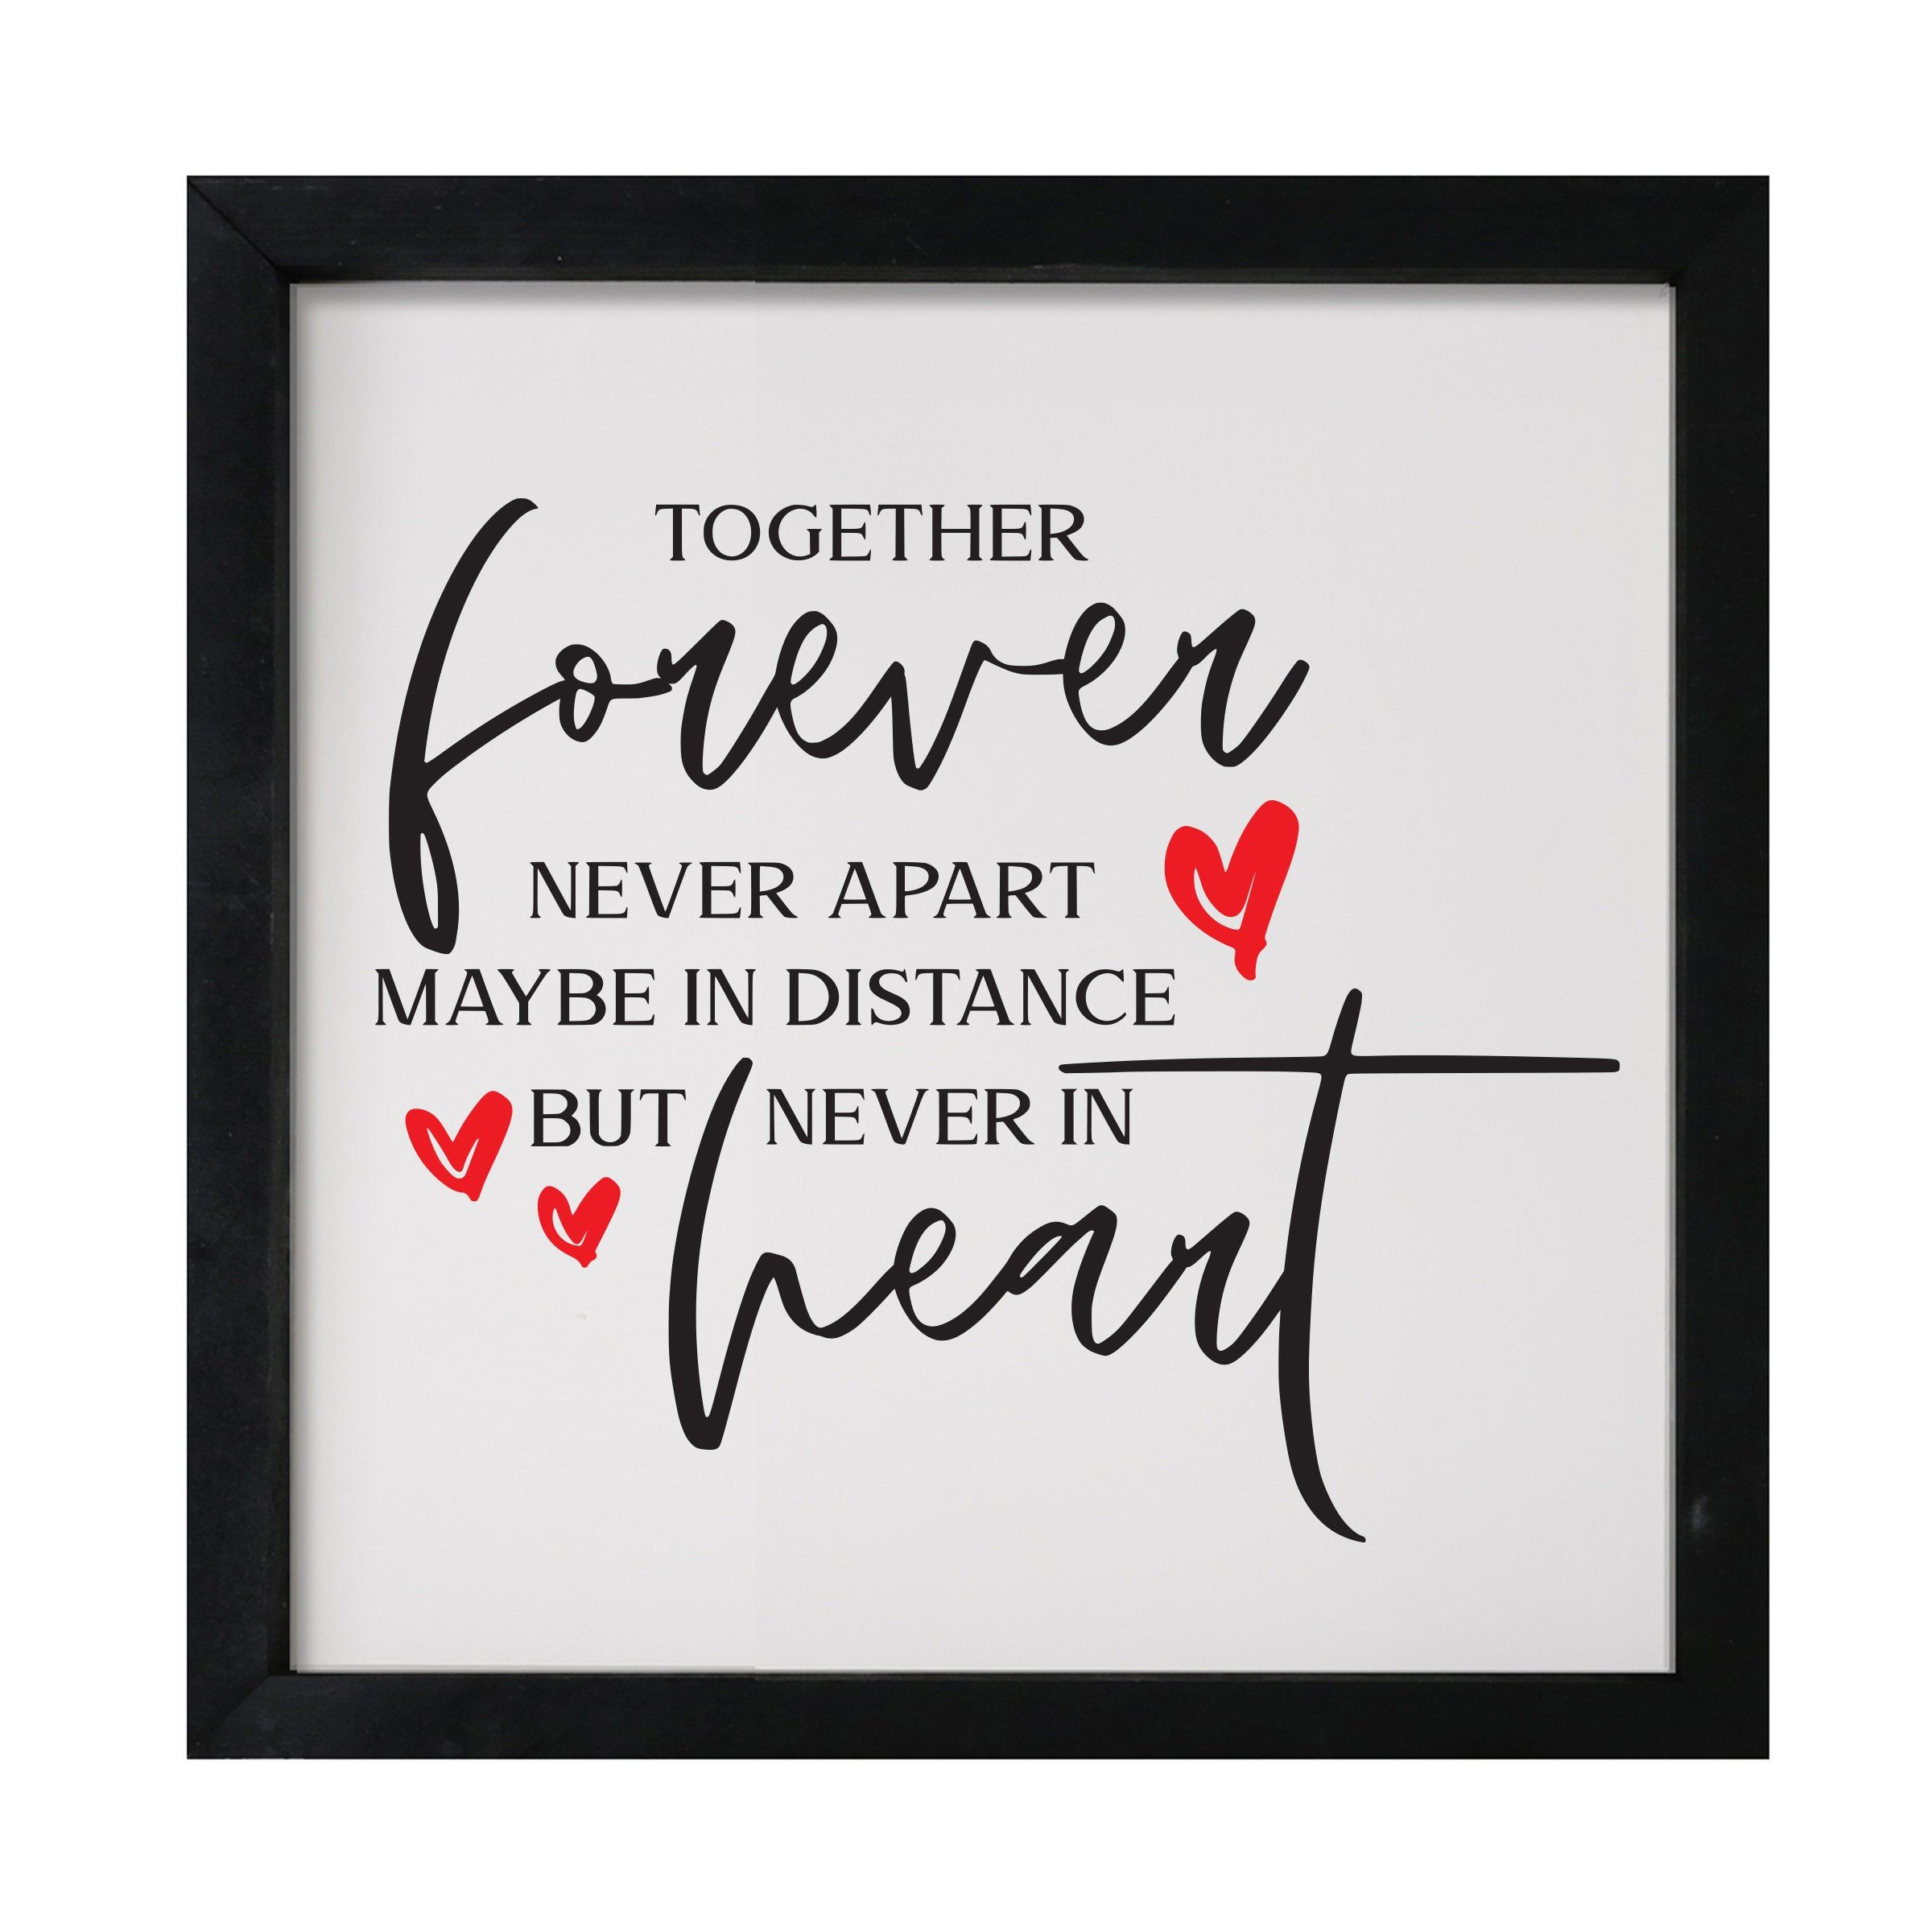 Wedding Gifts for Couple | Bedroom Wall Decor Over the Bed | Romantic Love Shadow Box | Mr and Mrs Wall Decor | Cute Love Decor for Bedroom